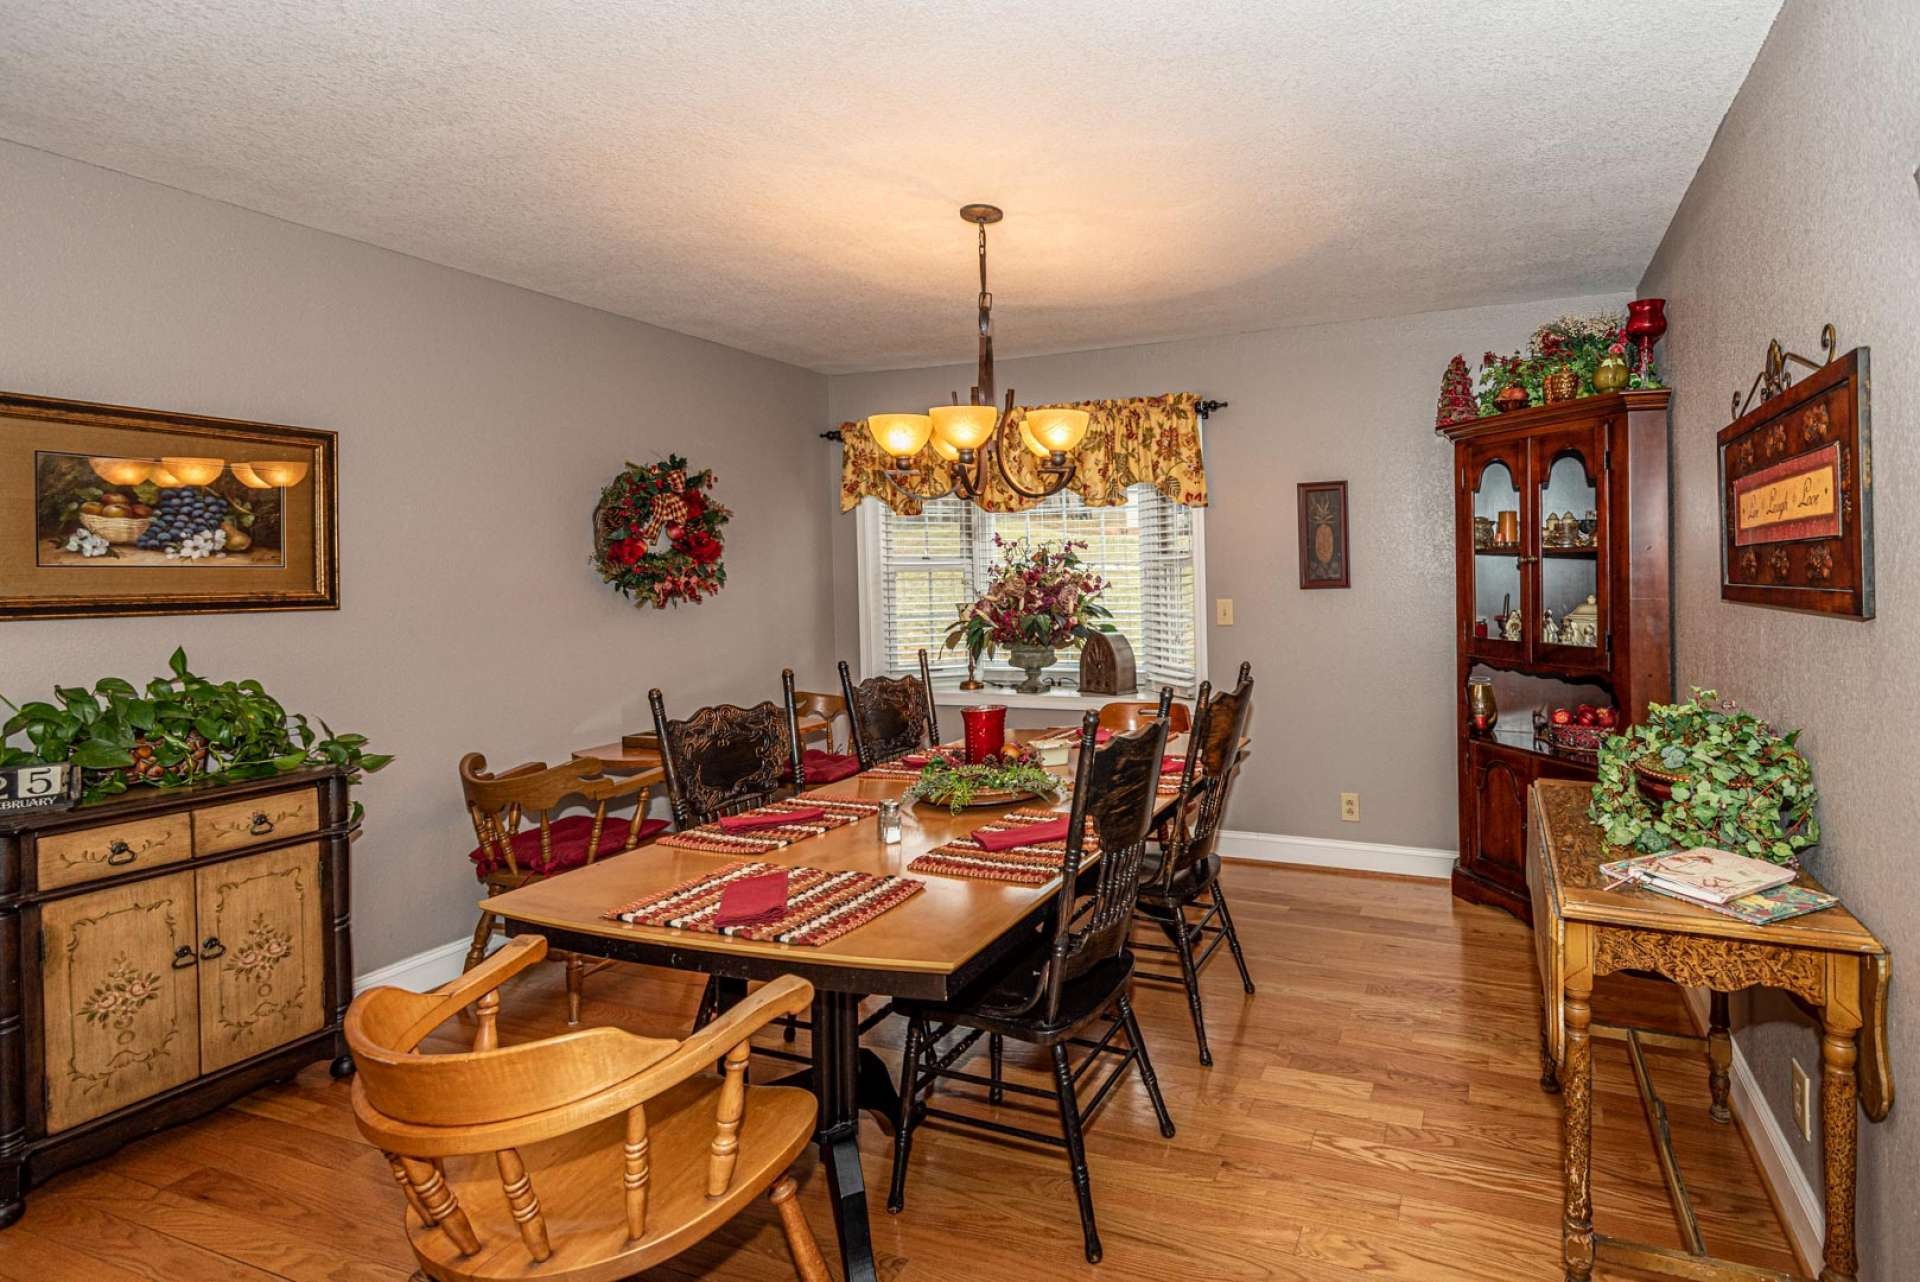 The dining area is perfect for formal entertaining and intimate candlelight dinners for two.